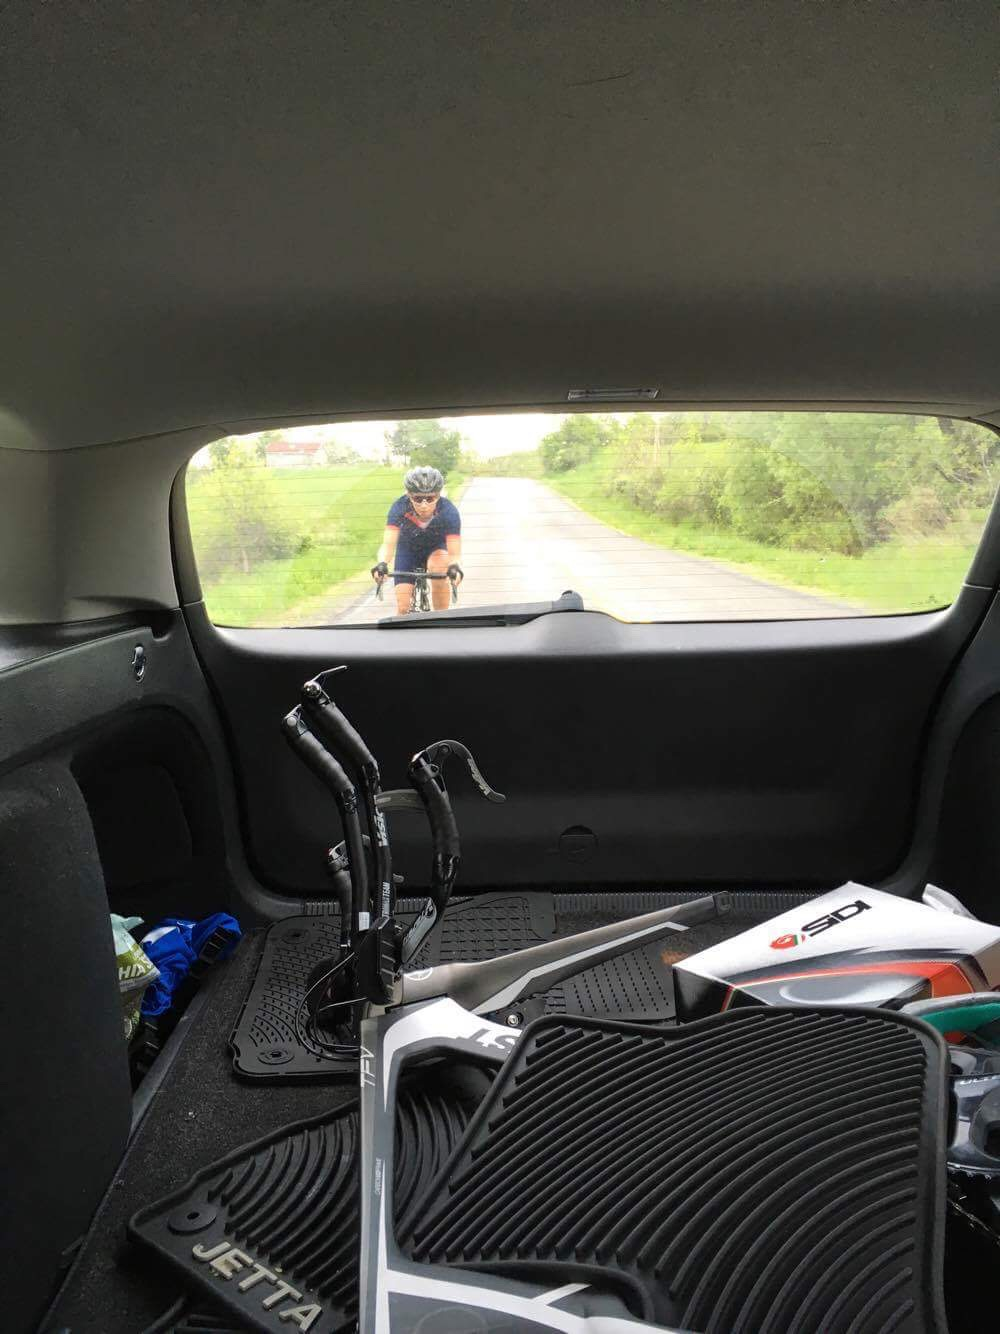 a little motorpacing